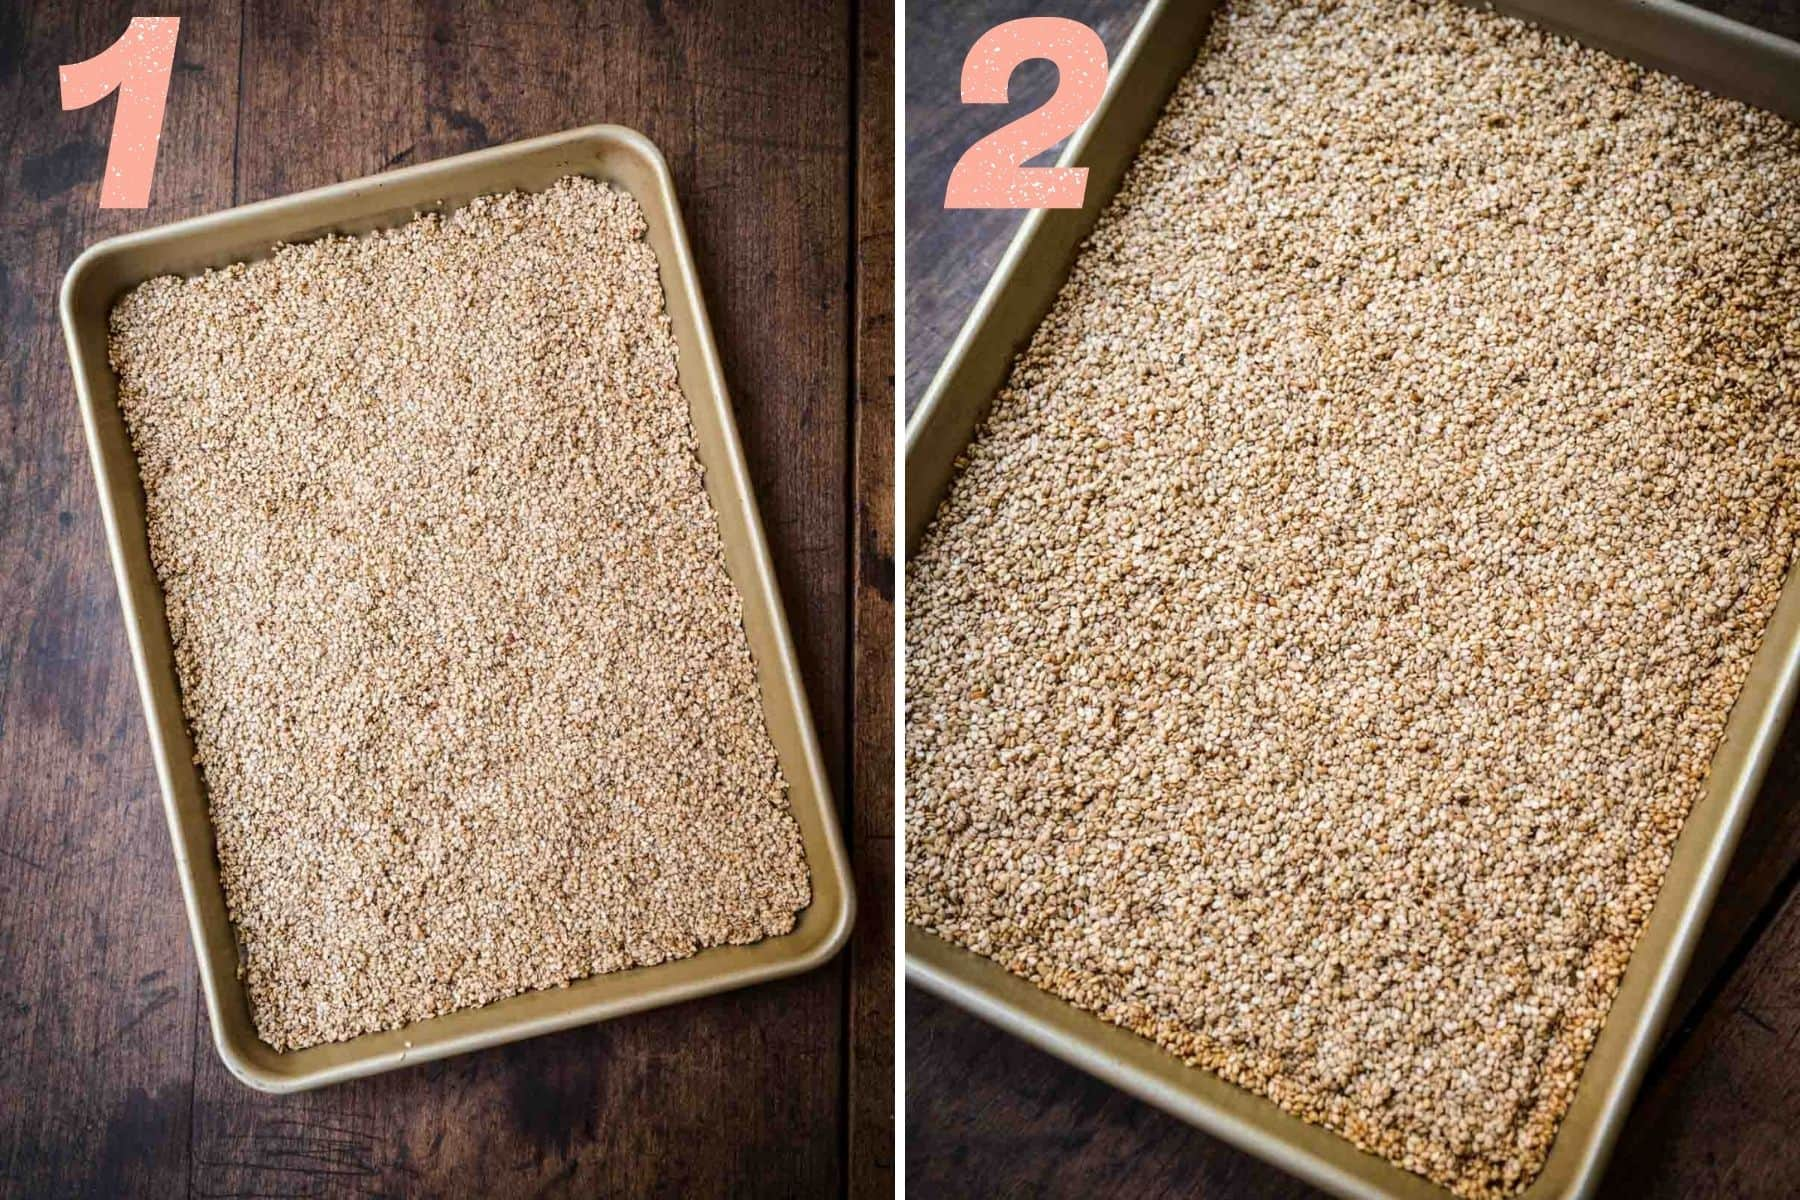 On the left: sesame seeds on a tray. On the right: sesame seeds after baking.